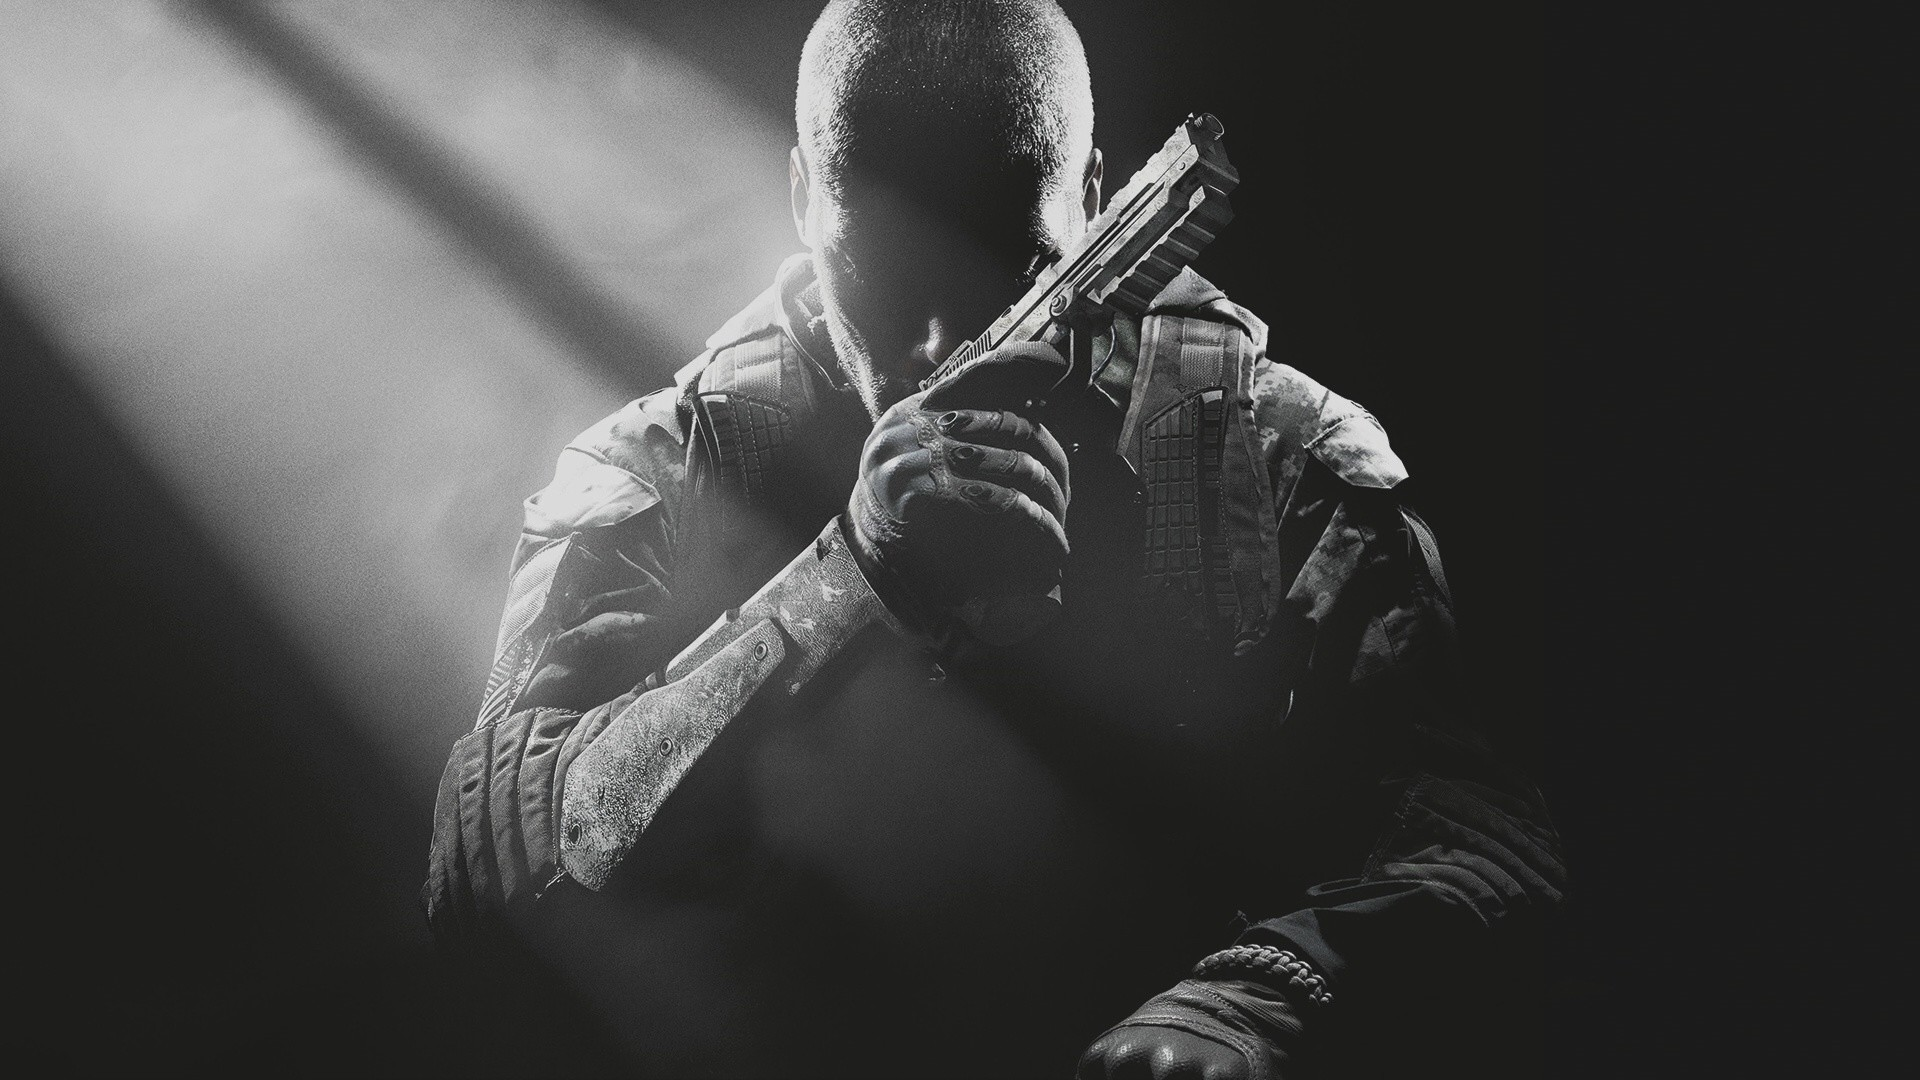 Cod Zombies Iphone Wallpaper Cod Black Ops 2 Wallpapers 80 Images